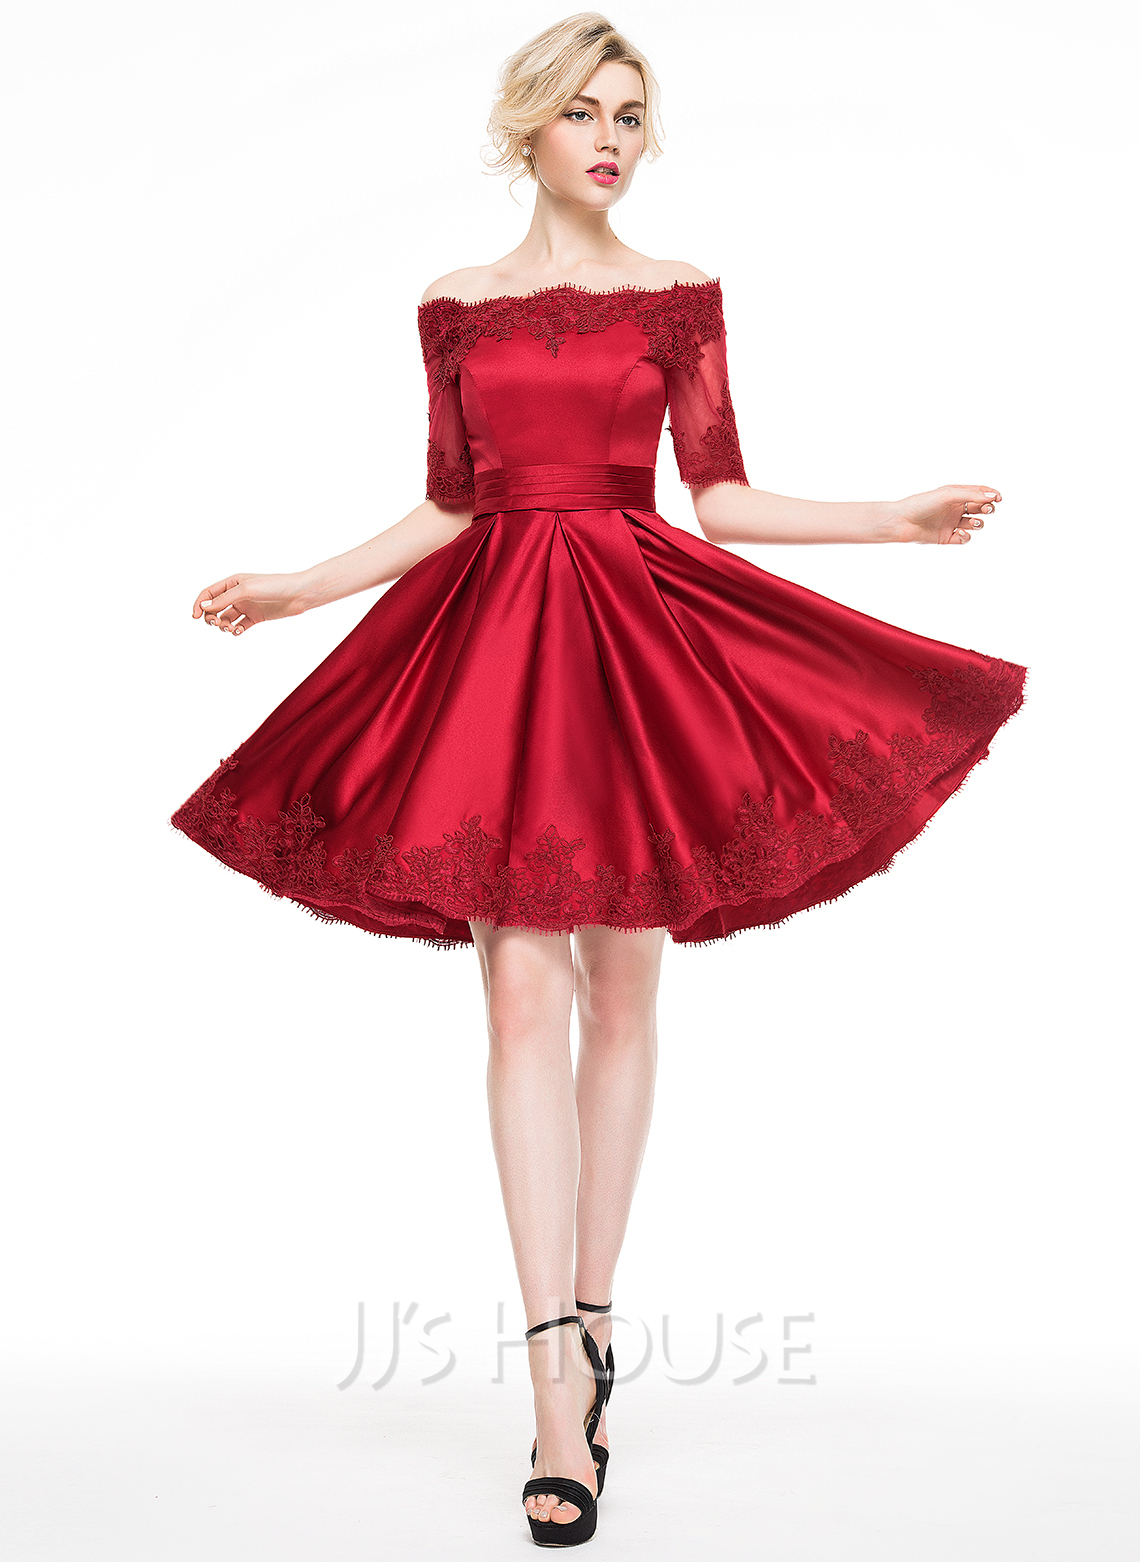 eb751c9c8b96 A-Line Princess Off-the-Shoulder Knee-Length Satin Cocktail Dress. Loading  zoom